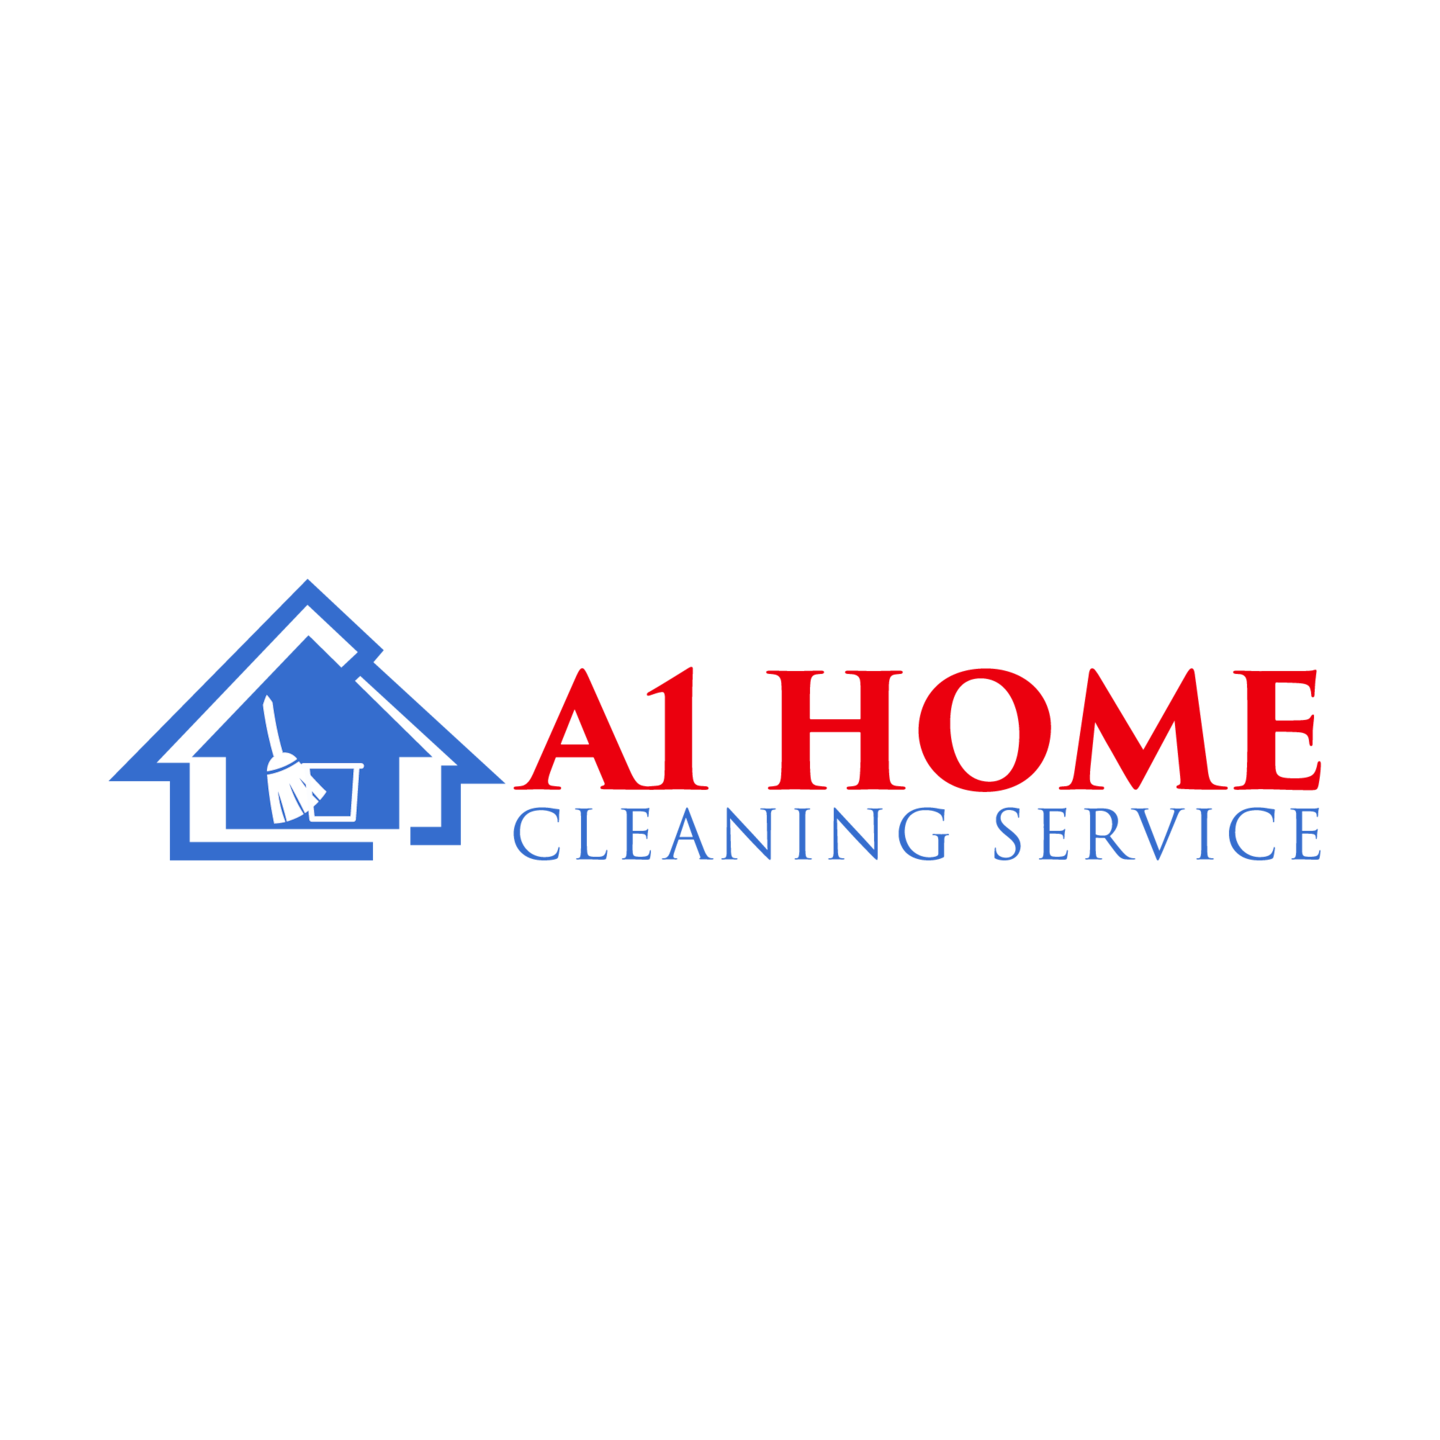 A1 Home Cleaning Service